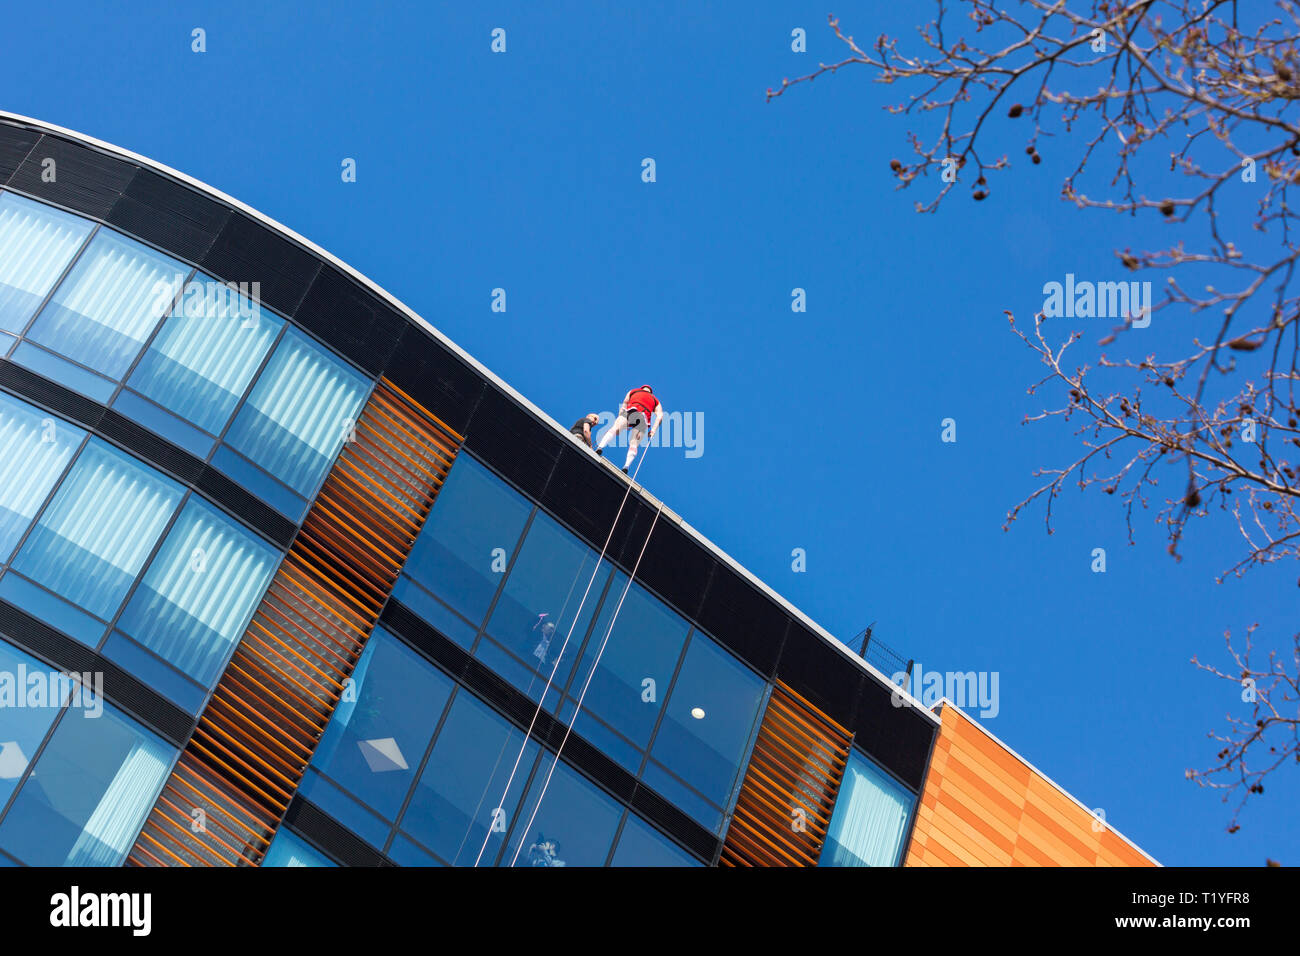 Bournemouth, Dorset, UK. 29th Mar, 2019. Staff working for telecommunications provider 4Com abseil down their new office building at One Lansdowne Plaza in Bournemouth which is 100ft high. They are raising funds for Hope Housing and Hope AOK Rucksack Appeal who provide support to homeless in Bournemouth. A lovely warm sunny day for the descent!  Man getting ready to abseil down while friends and colleagues look out. Credit: Carolyn Jenkins/Alamy Live News - Stock Image